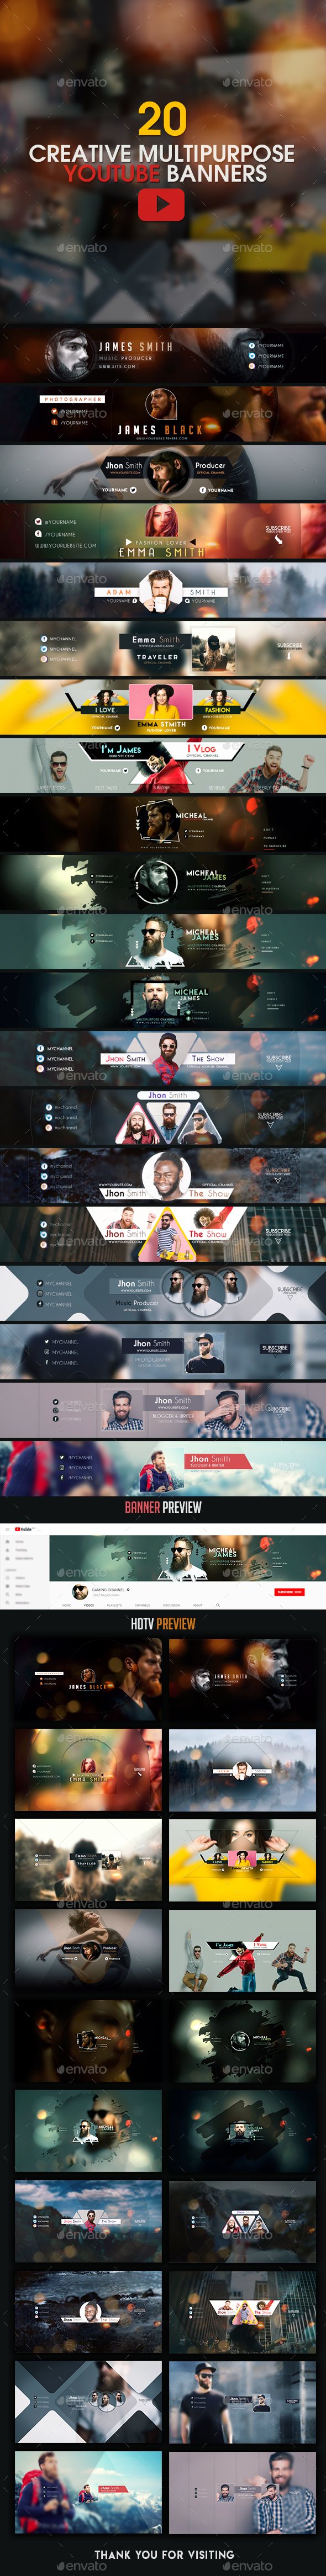 YouTube Bundle - 20 Creative MultiPurpose YouTube Banners - YouTube Social Media